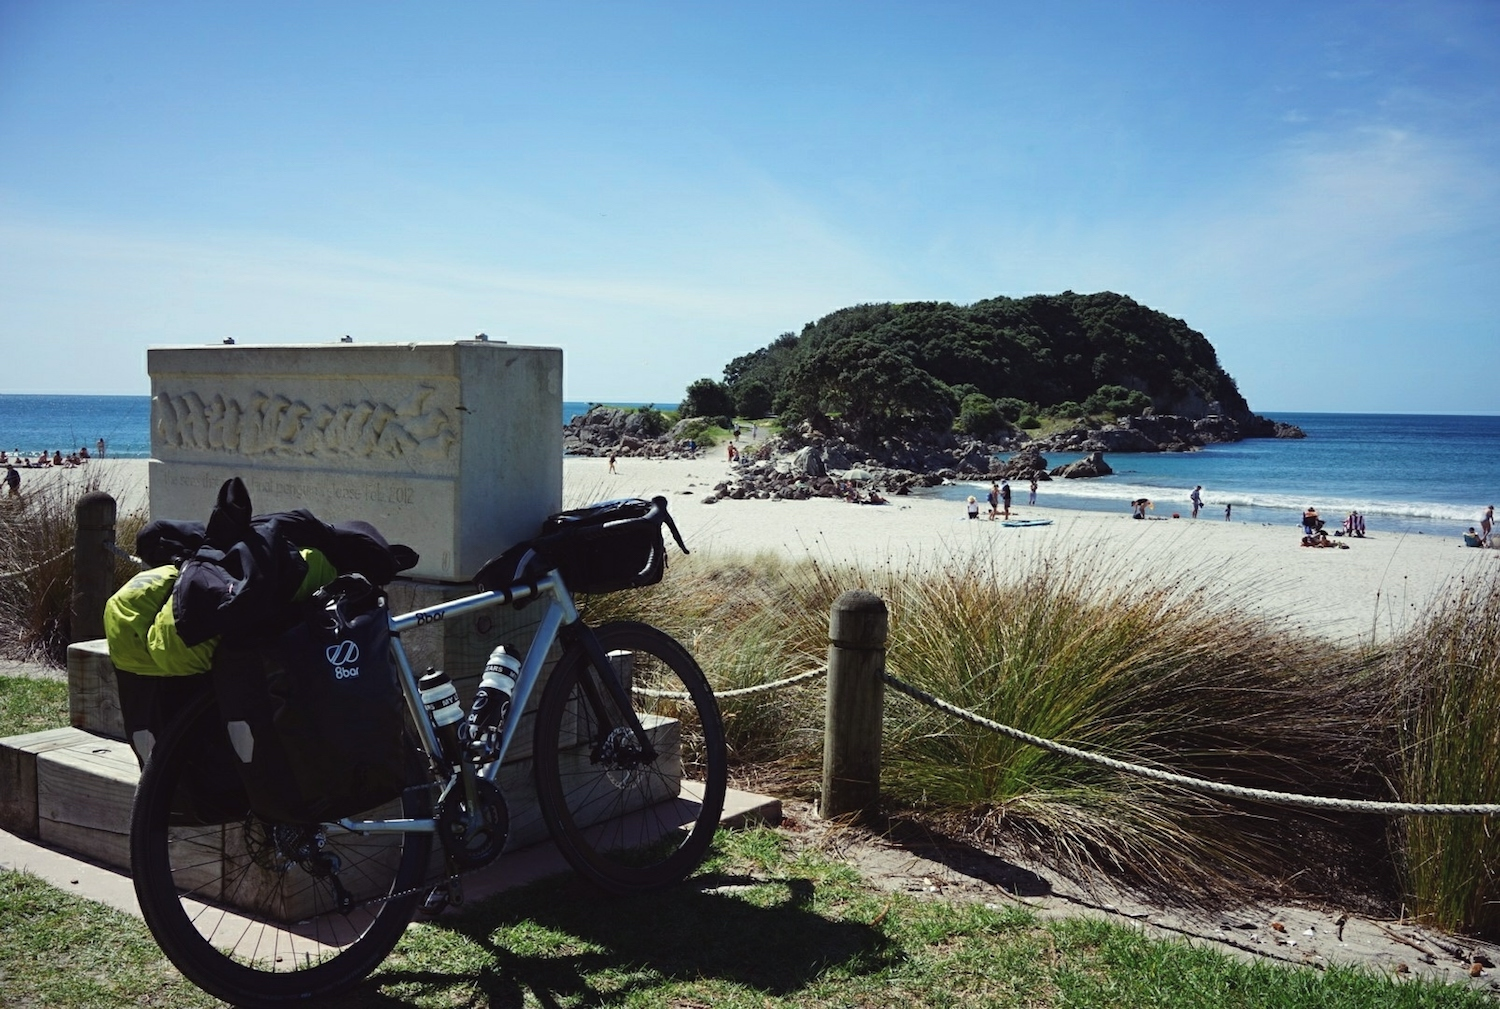 2017 03 08 05 58 06 1 - New Zealand by bike? Why not?!